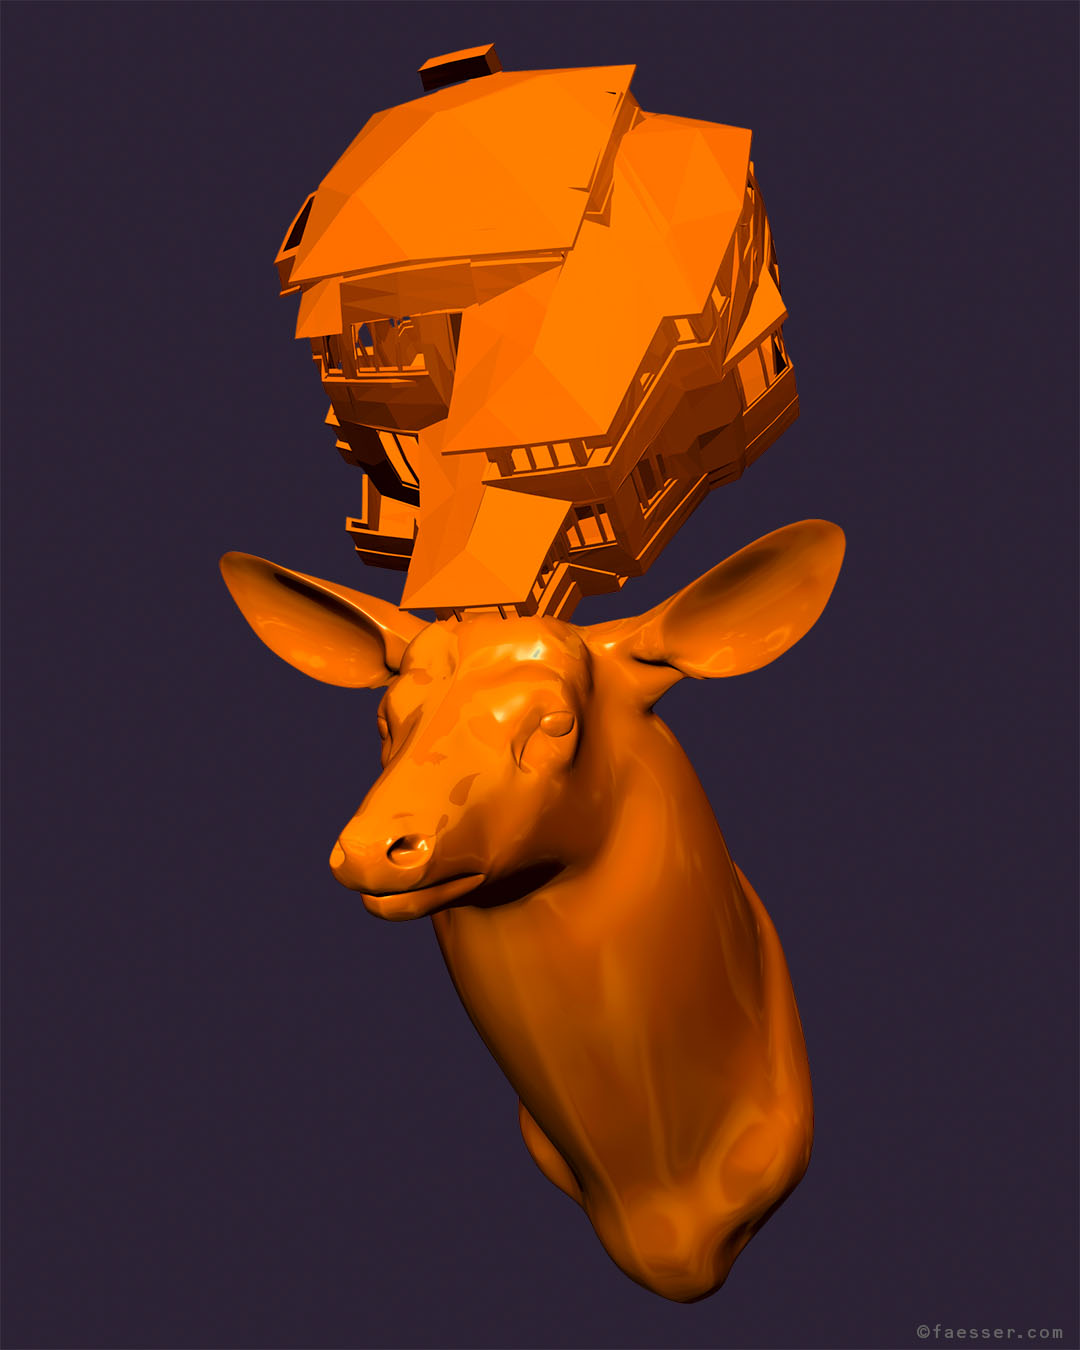 Orange deer trophy with a splitted house as antlers; work of art as figurative sculpture; artist Roland Faesser, sculptor and painter 2017